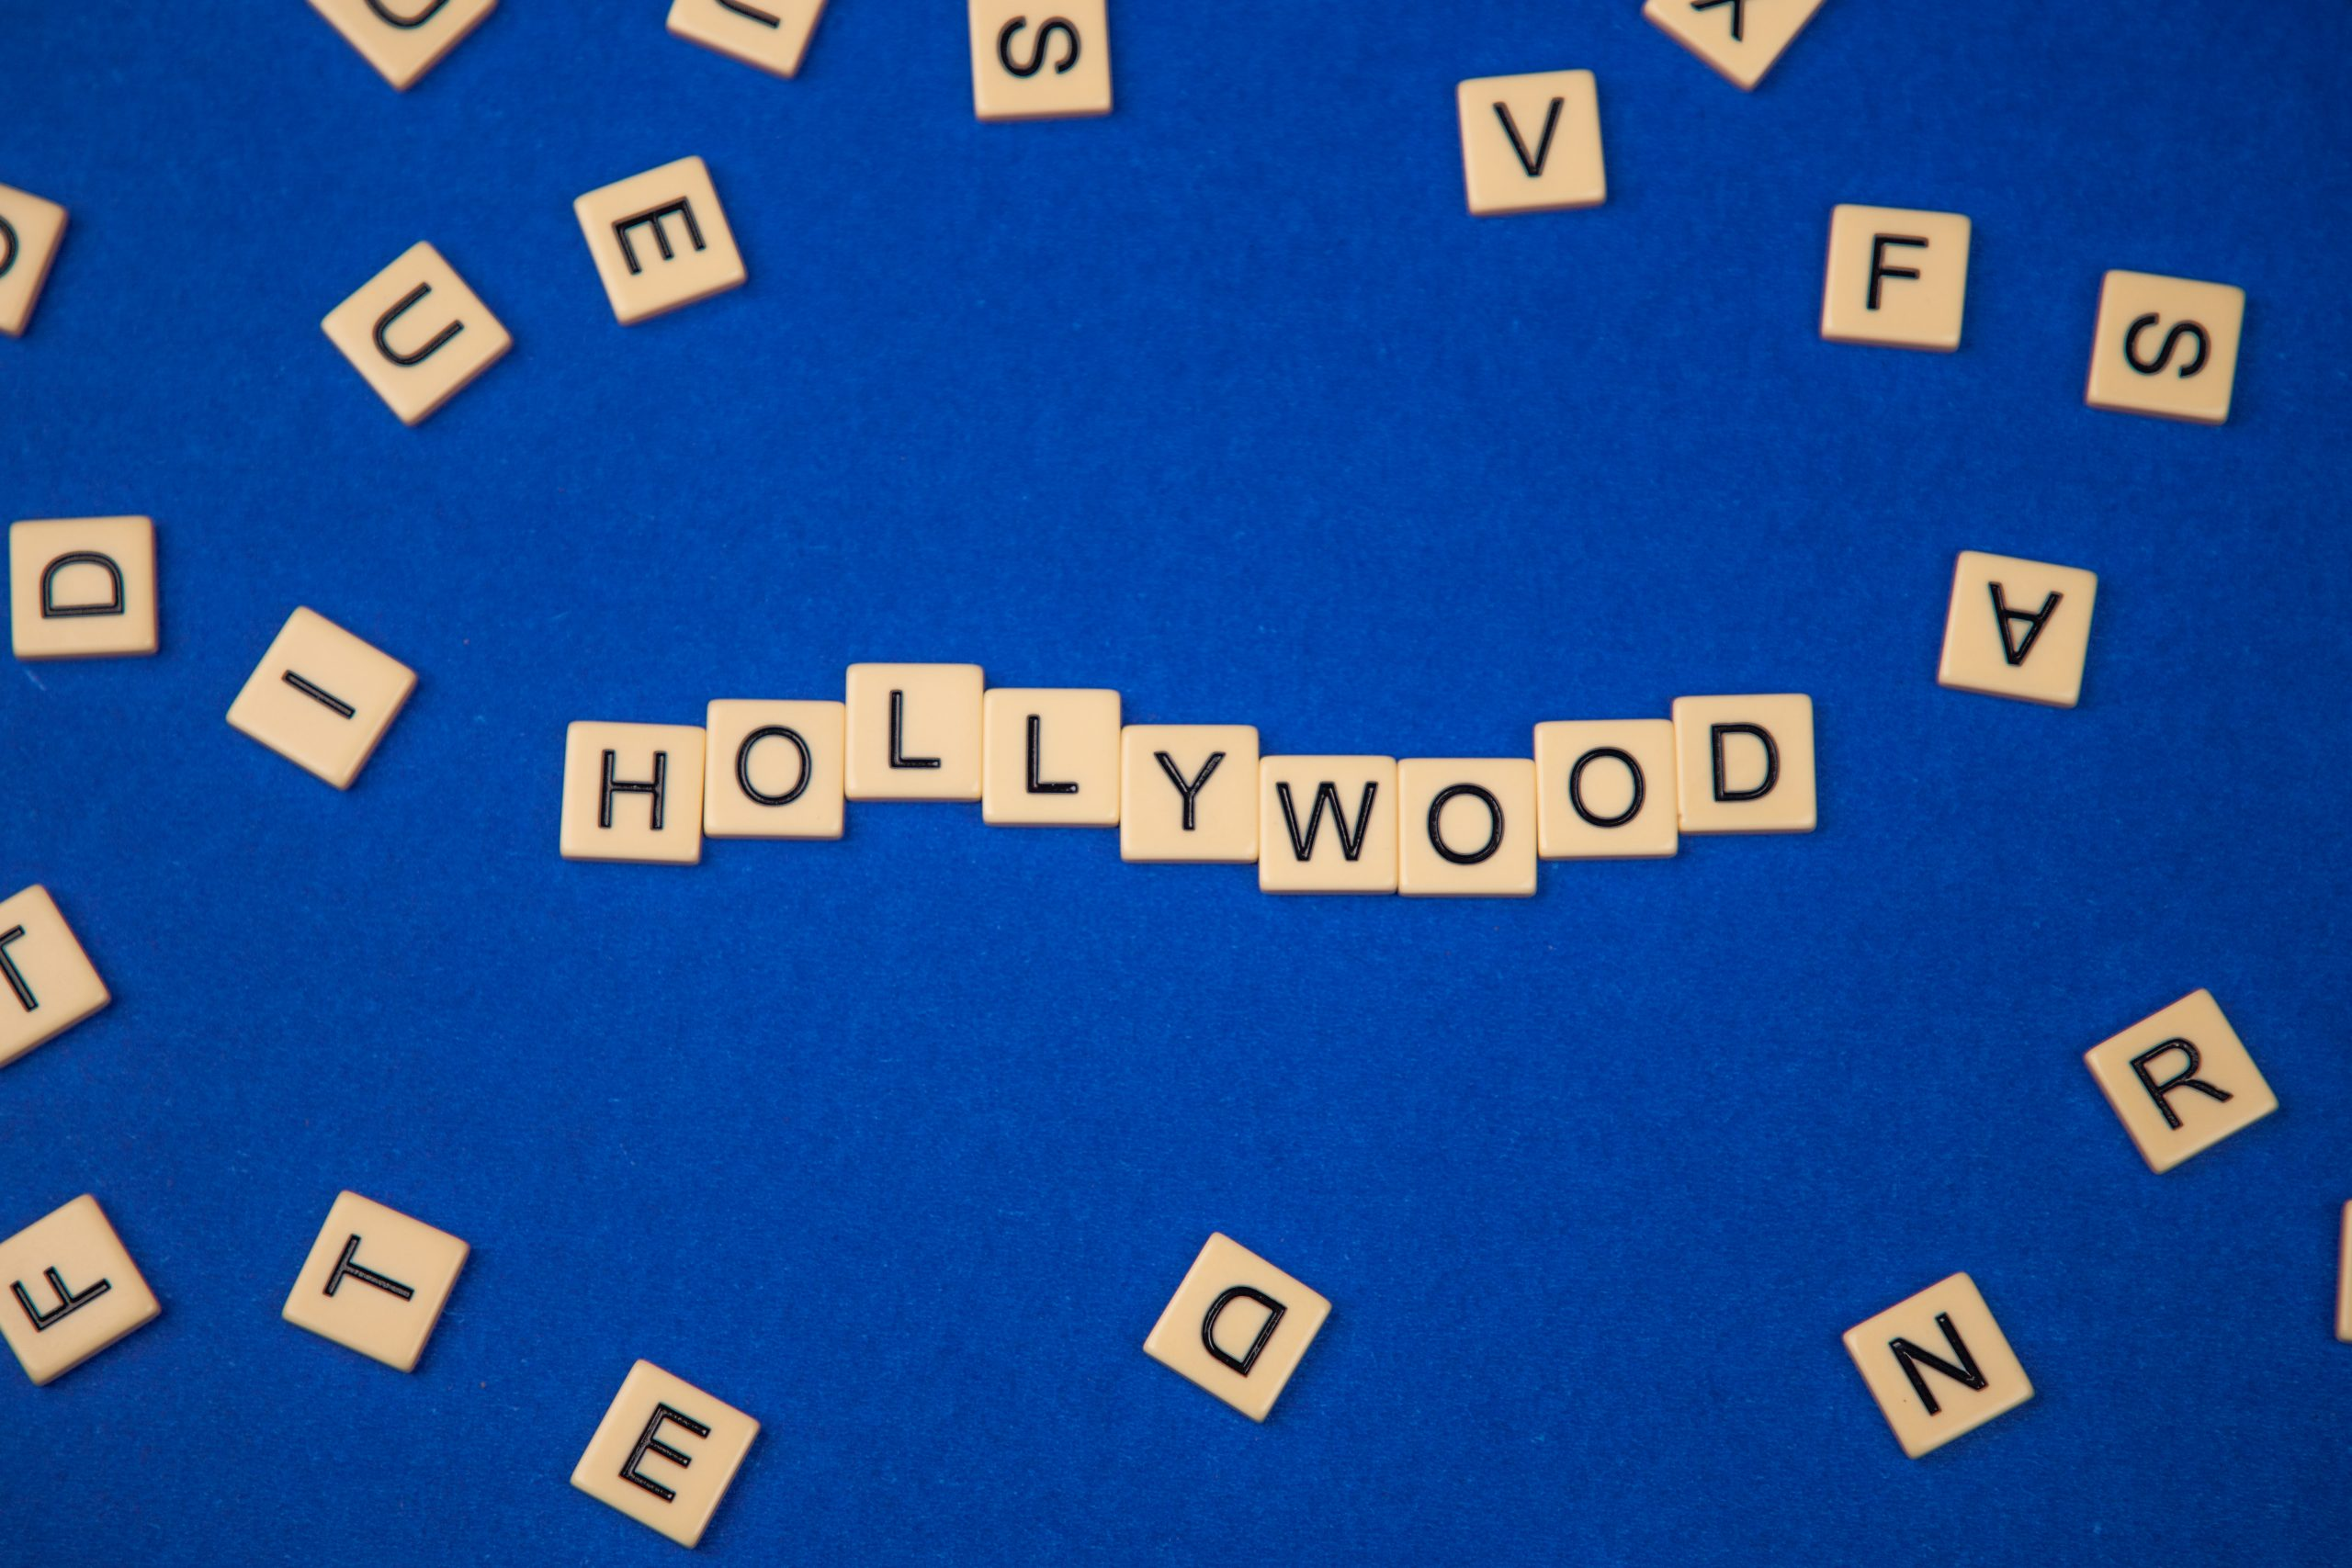 Hollywood in Word